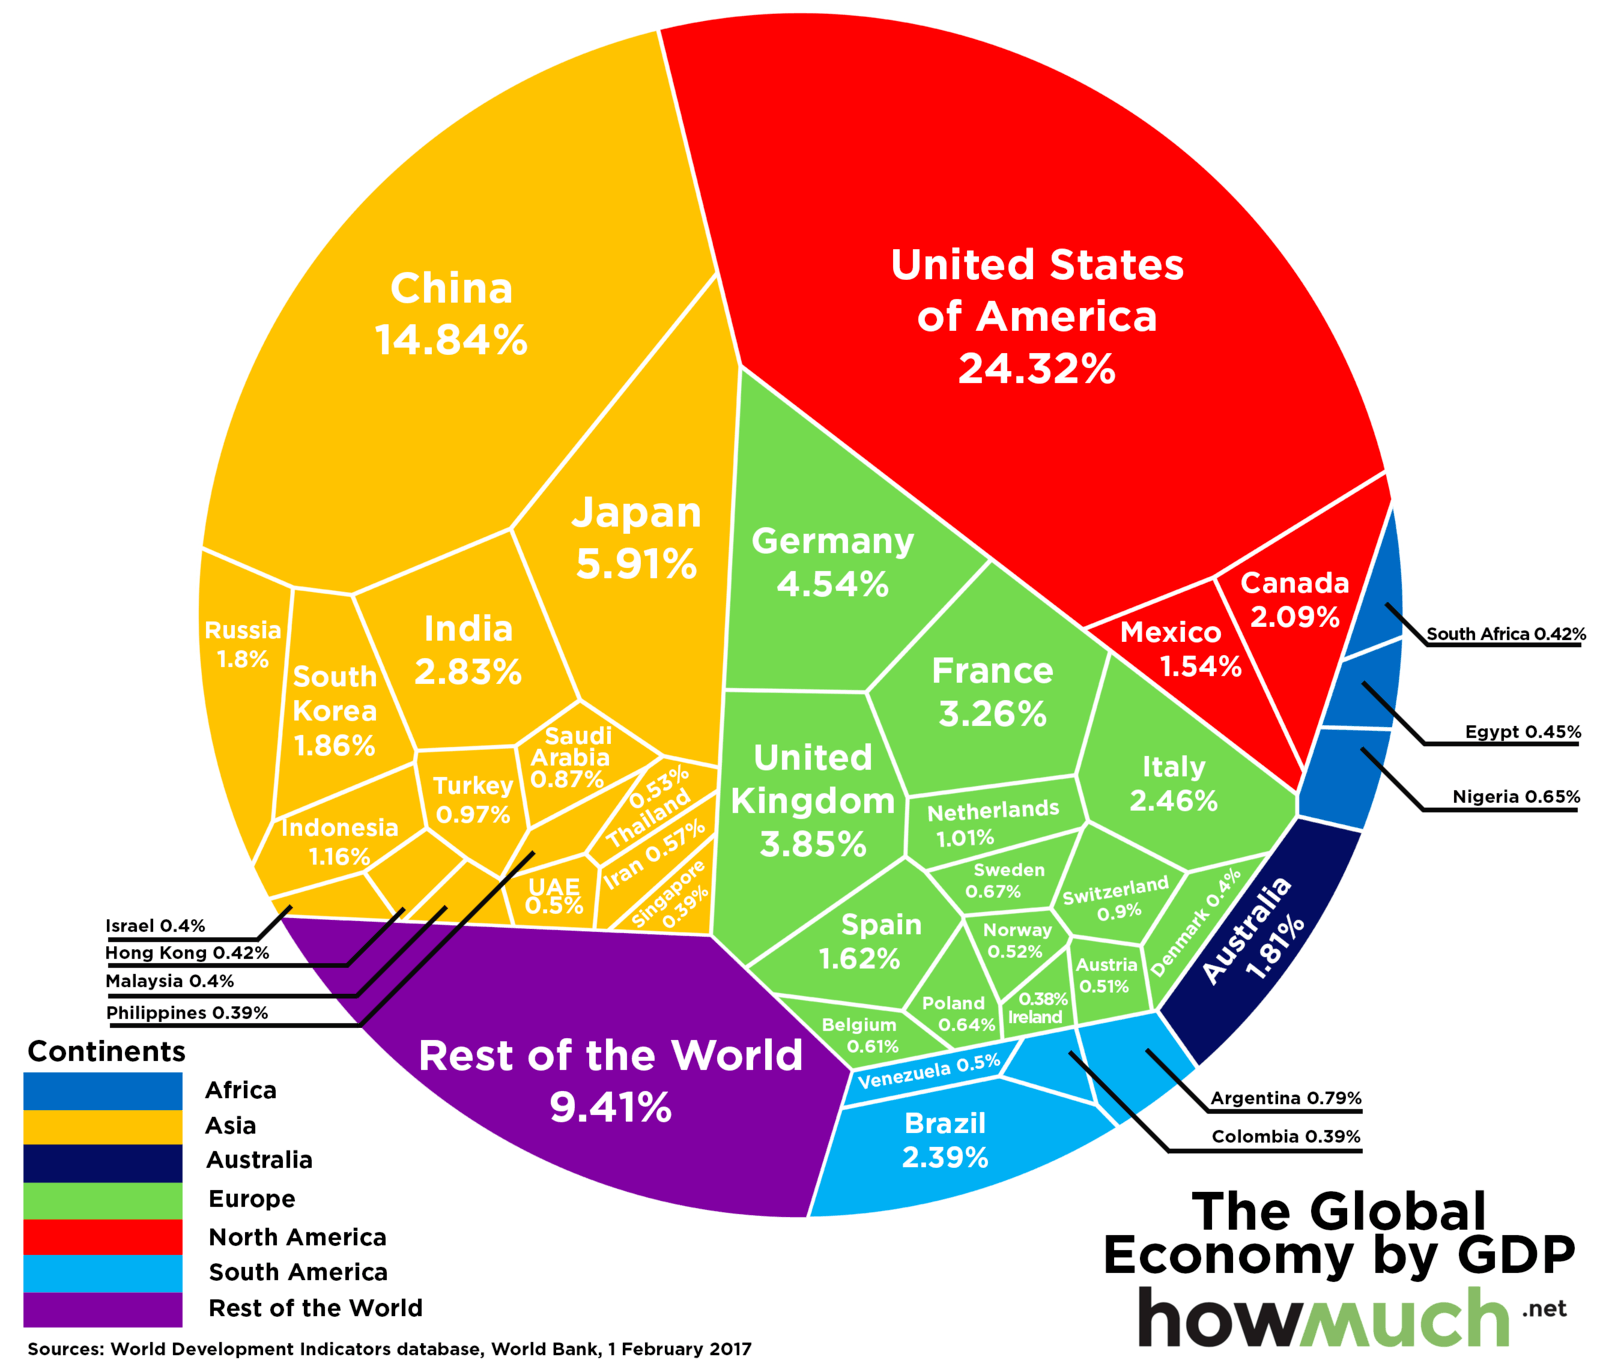 Global Economy by GDP: Voronoi Diagram Used for These Data Visualizations